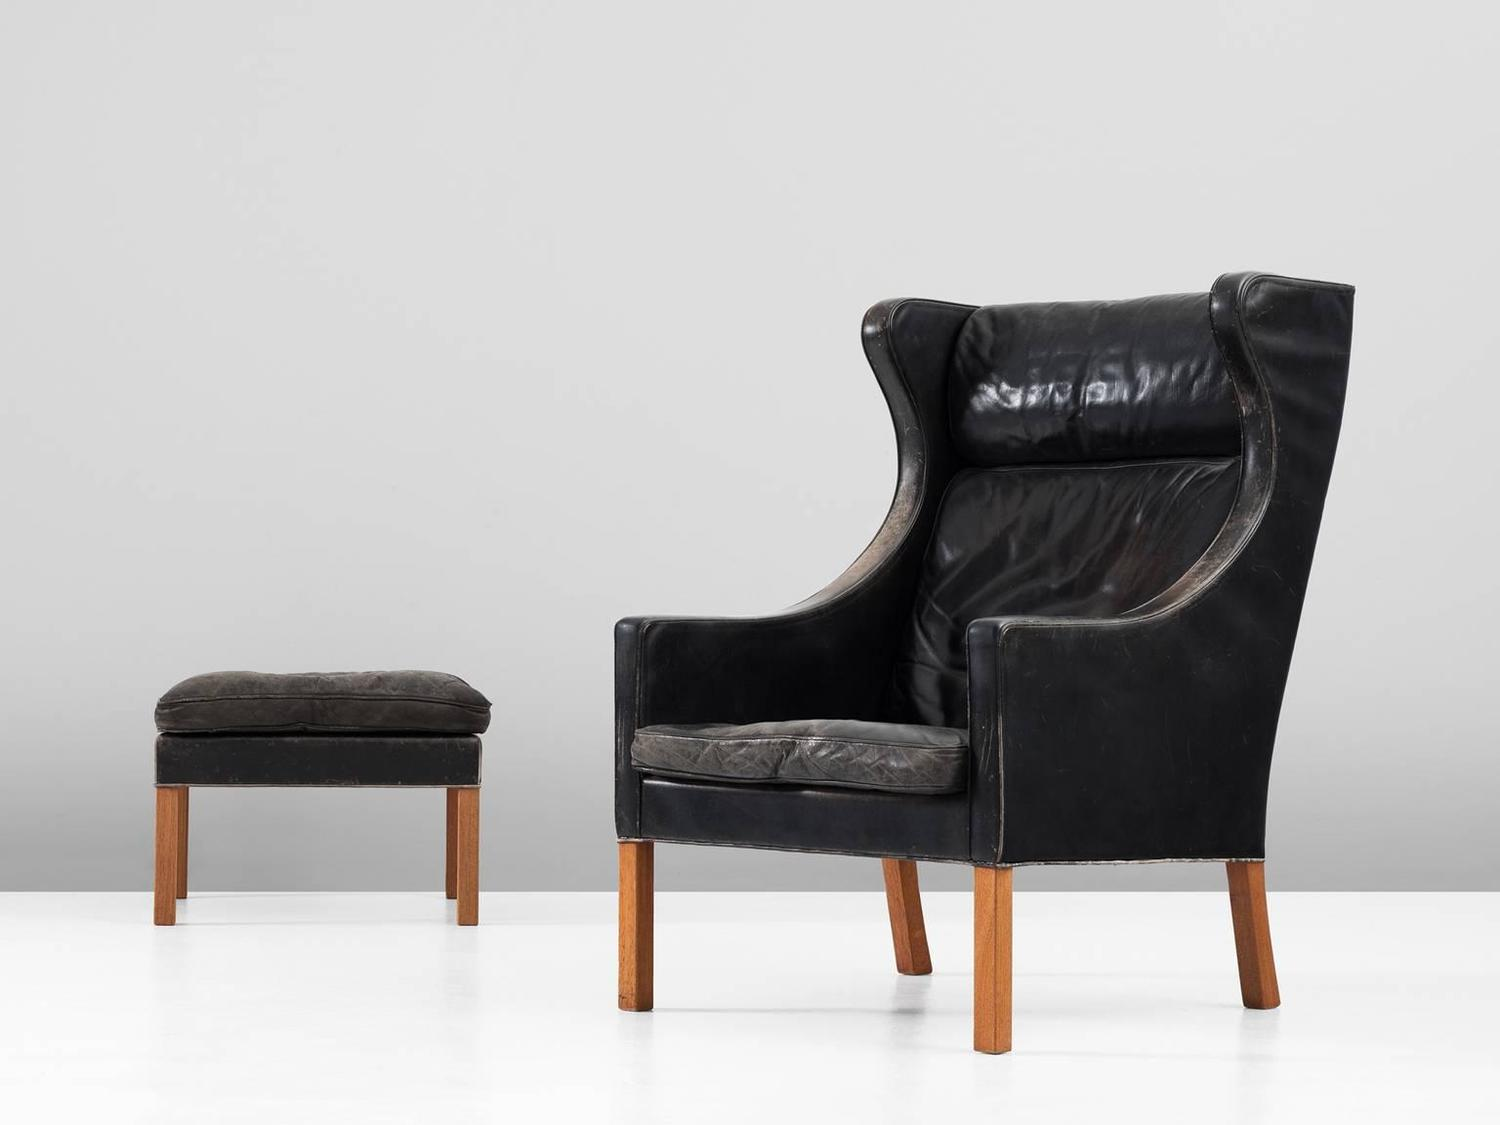 B Rge Mogensen Wingback Chair And Ottoman In Black Leather